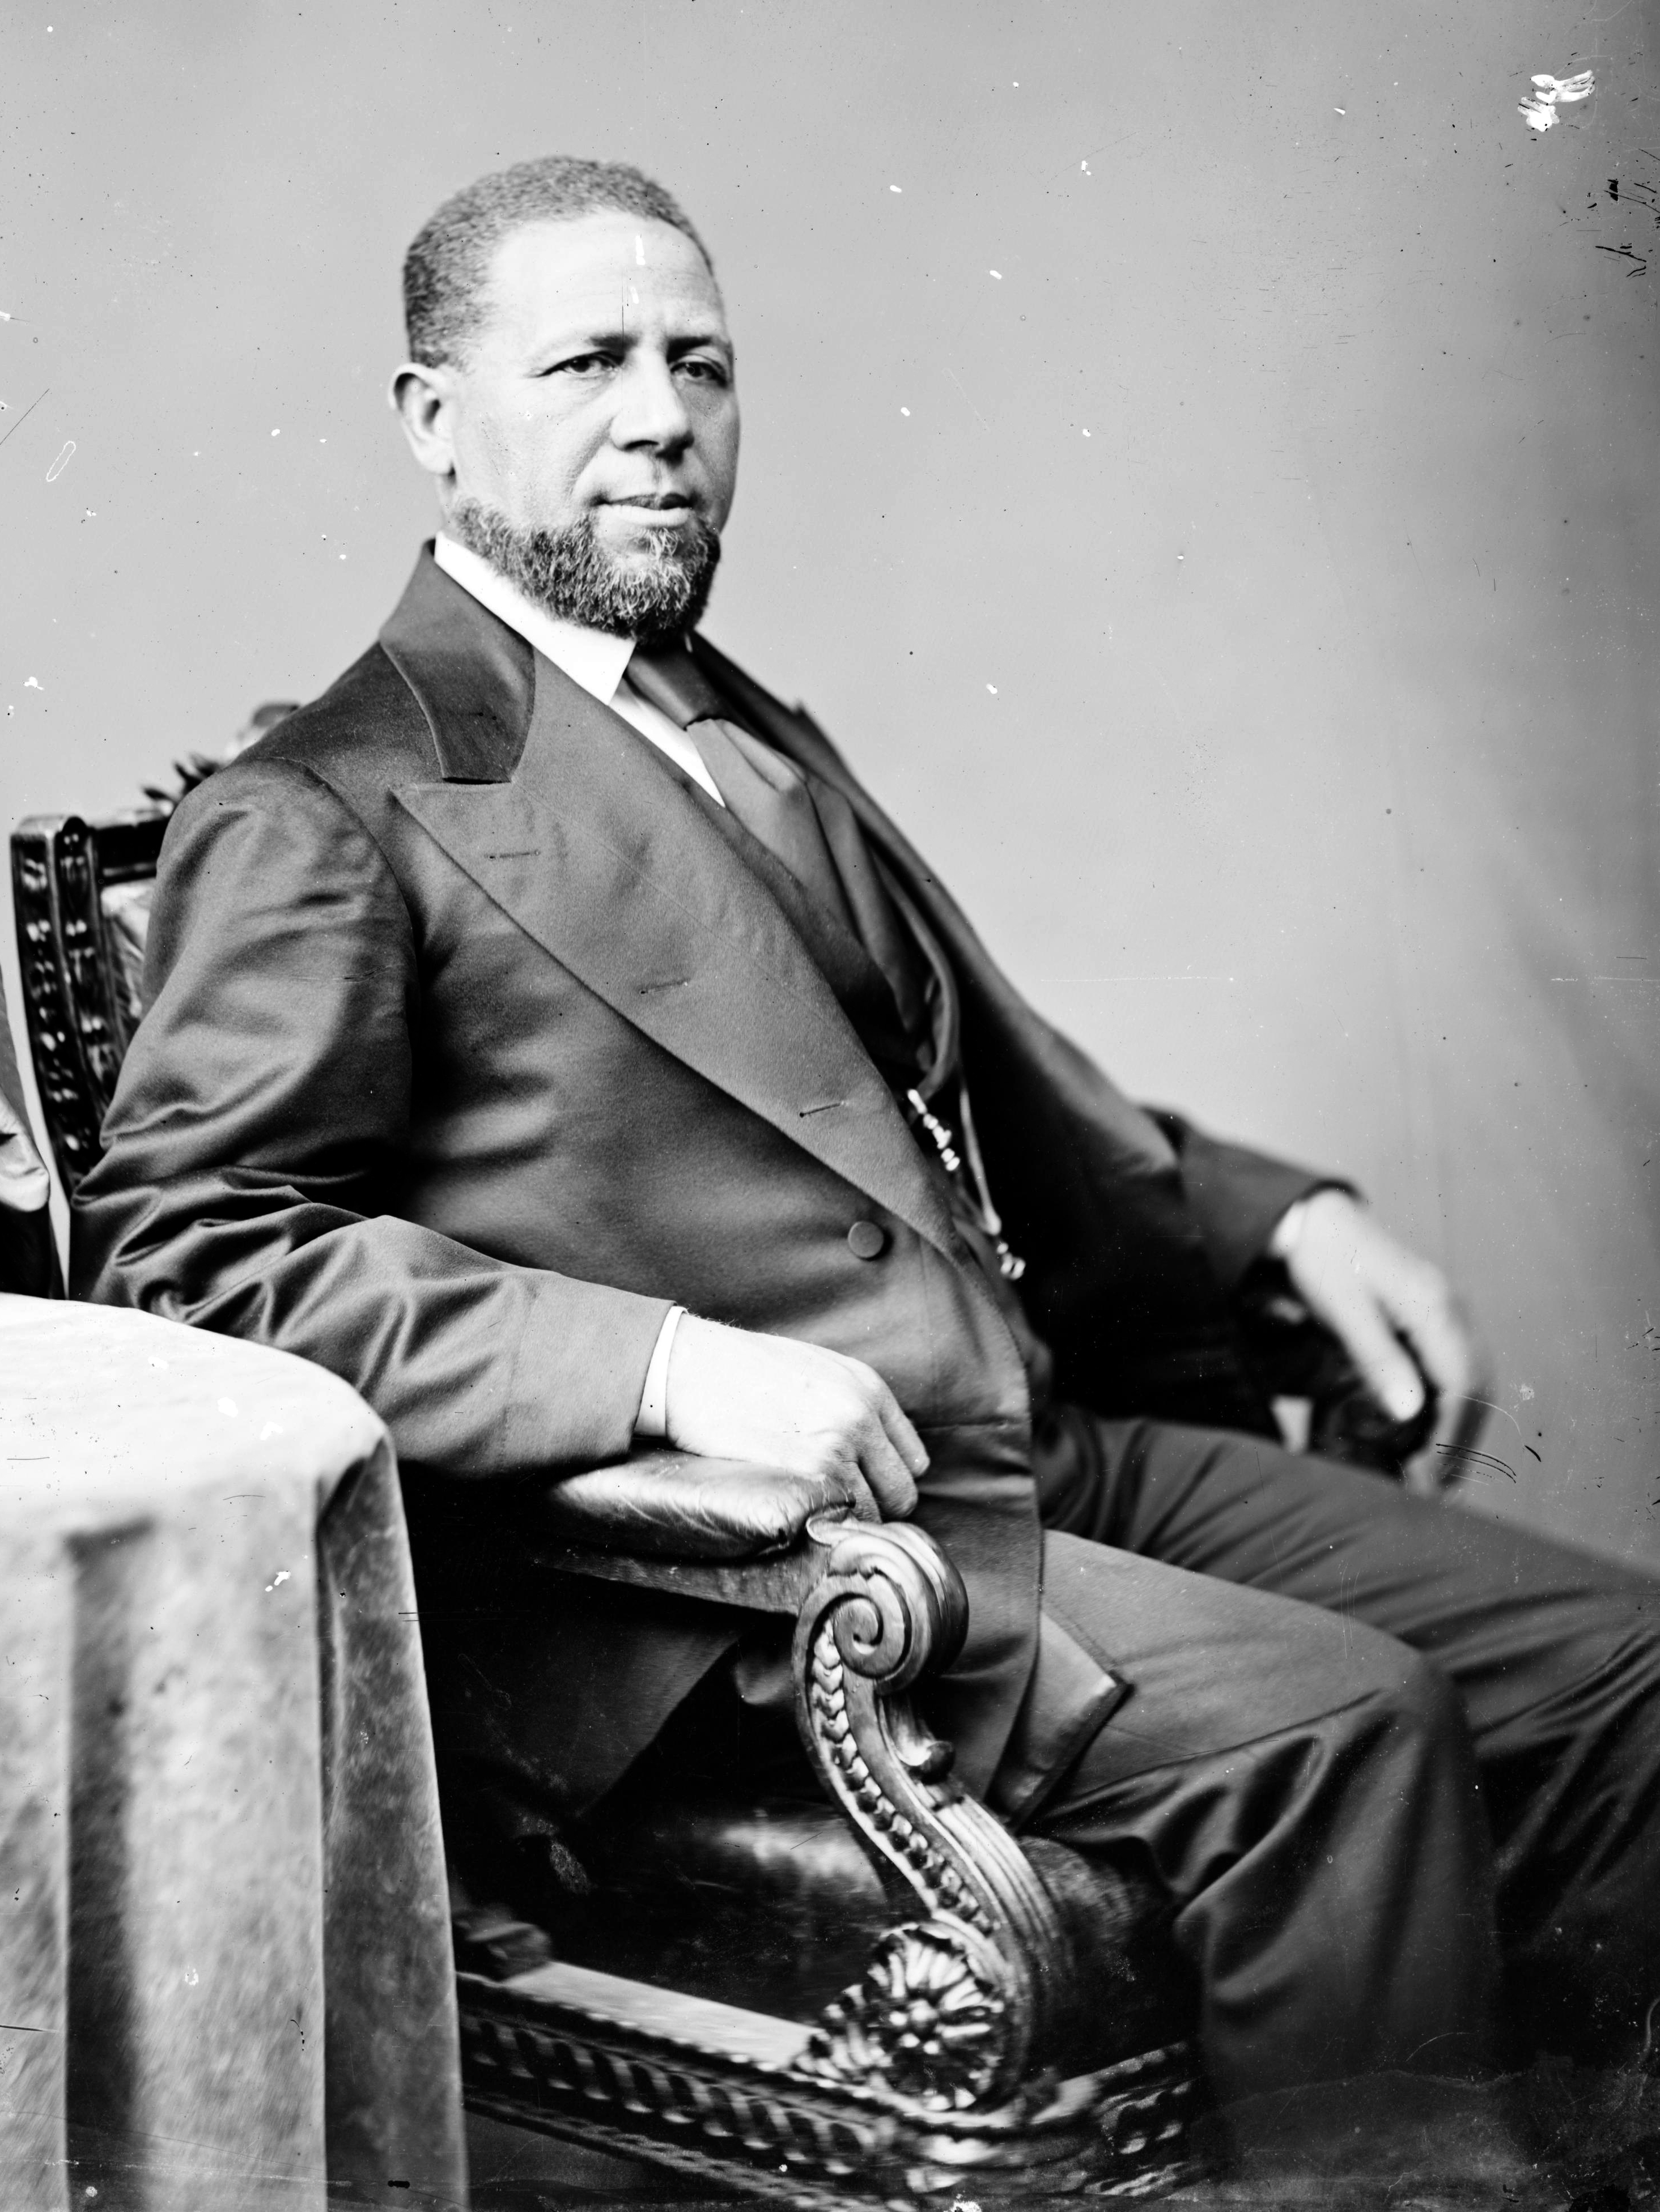 Hiram Rhoades Revels, First Black U.S. Senator